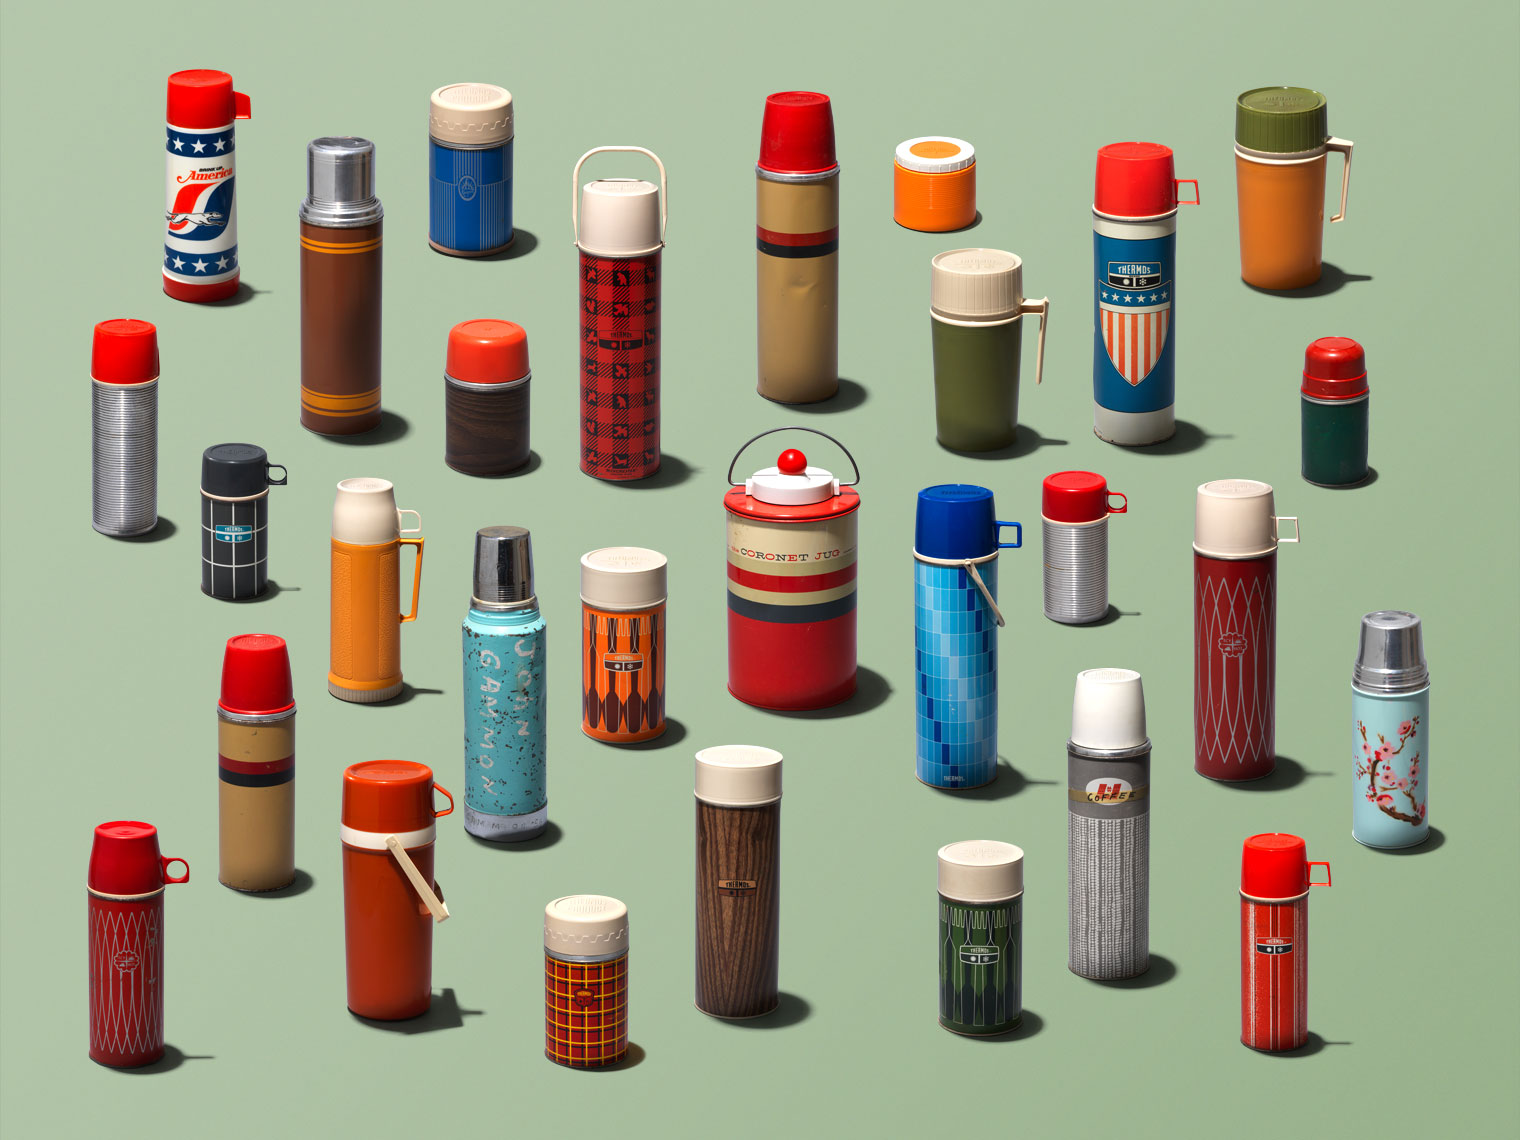 vintage thermos collection on a green background